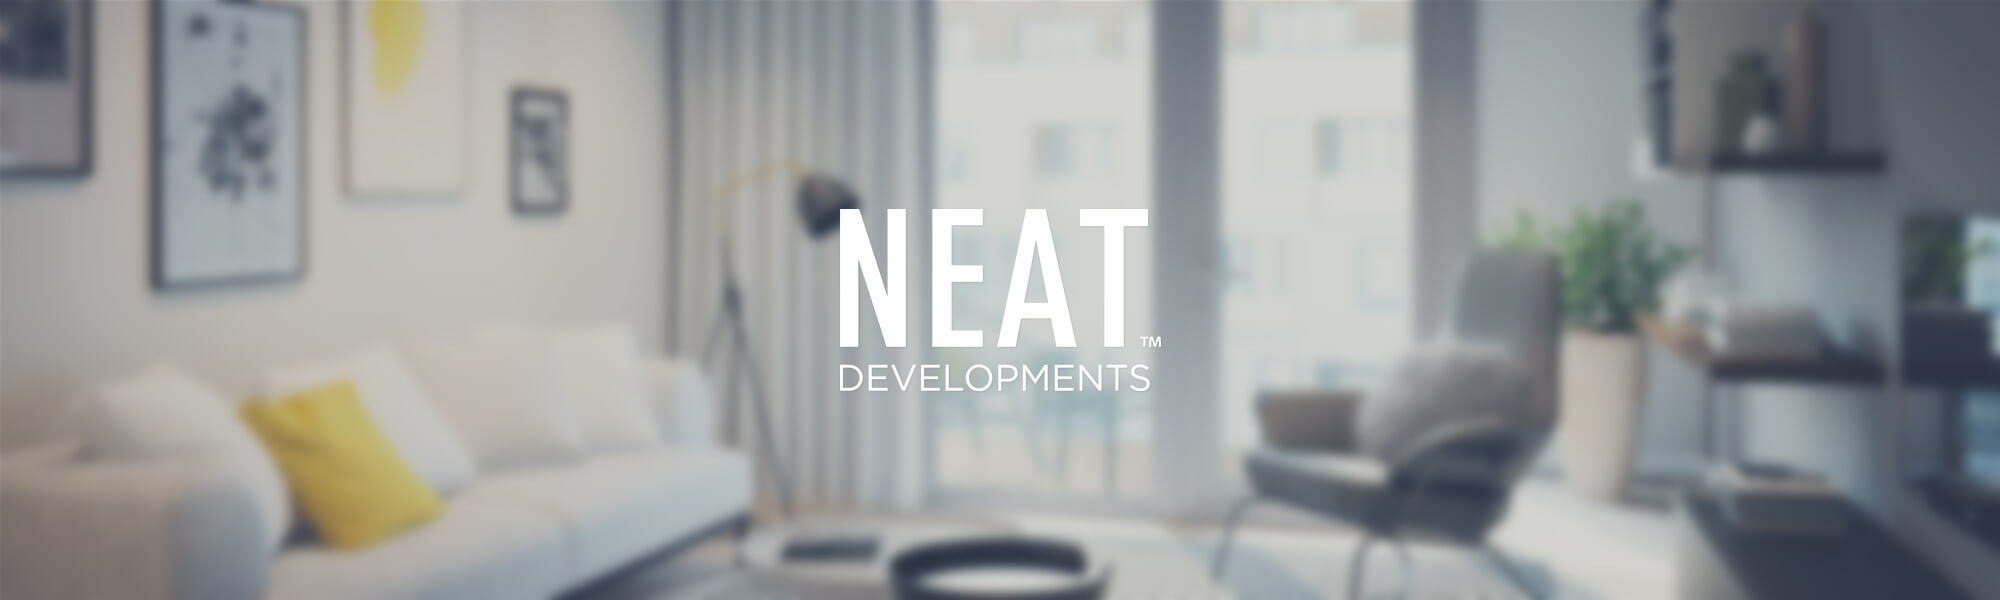 NEAT Developments Website Design